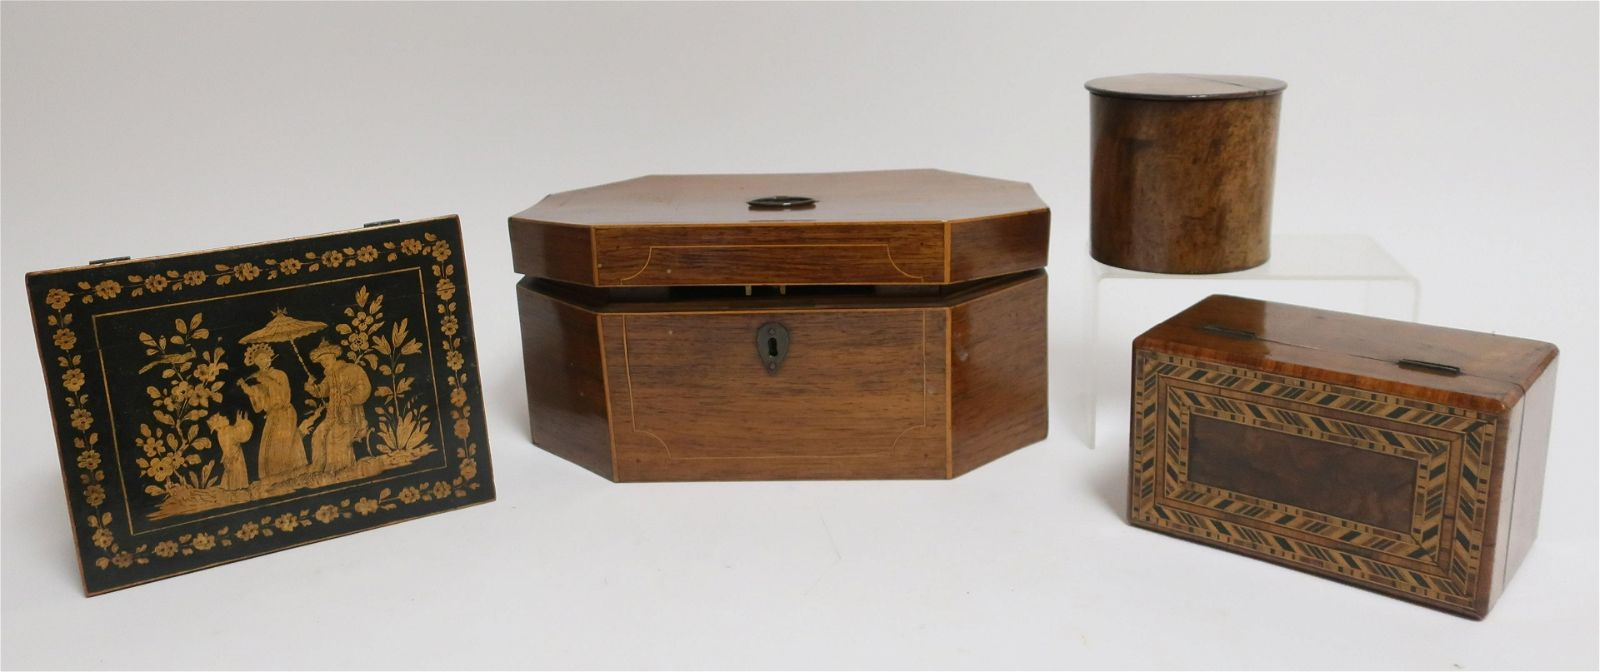 4 English Wood Boxes, 19th C. and later